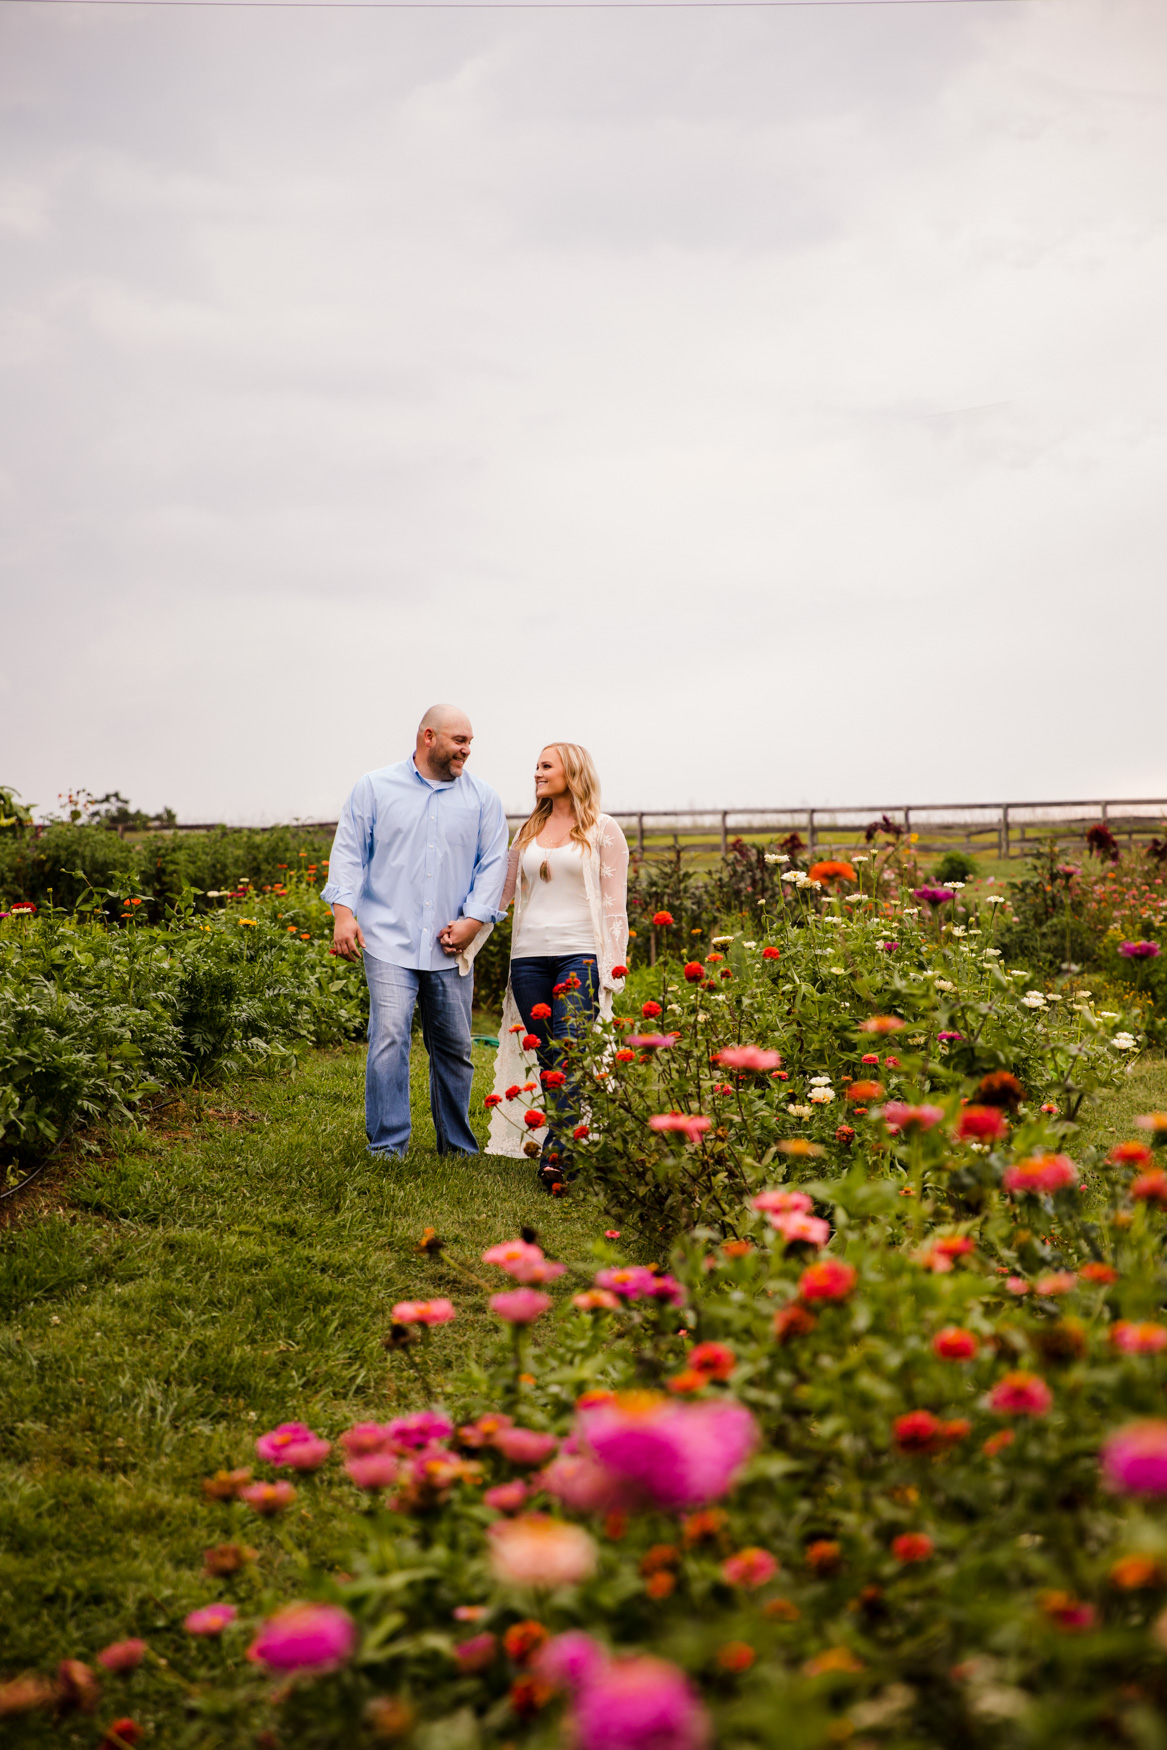 Engagement Session Walking through Garden The Farm - A Gathering Place Candler NC Wedding Photography